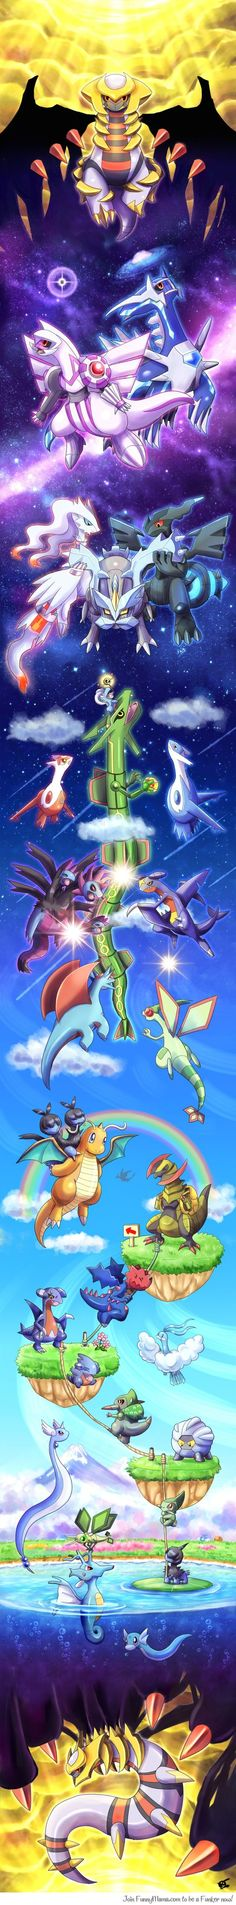 The Wonderful World of Dragon Pokemon